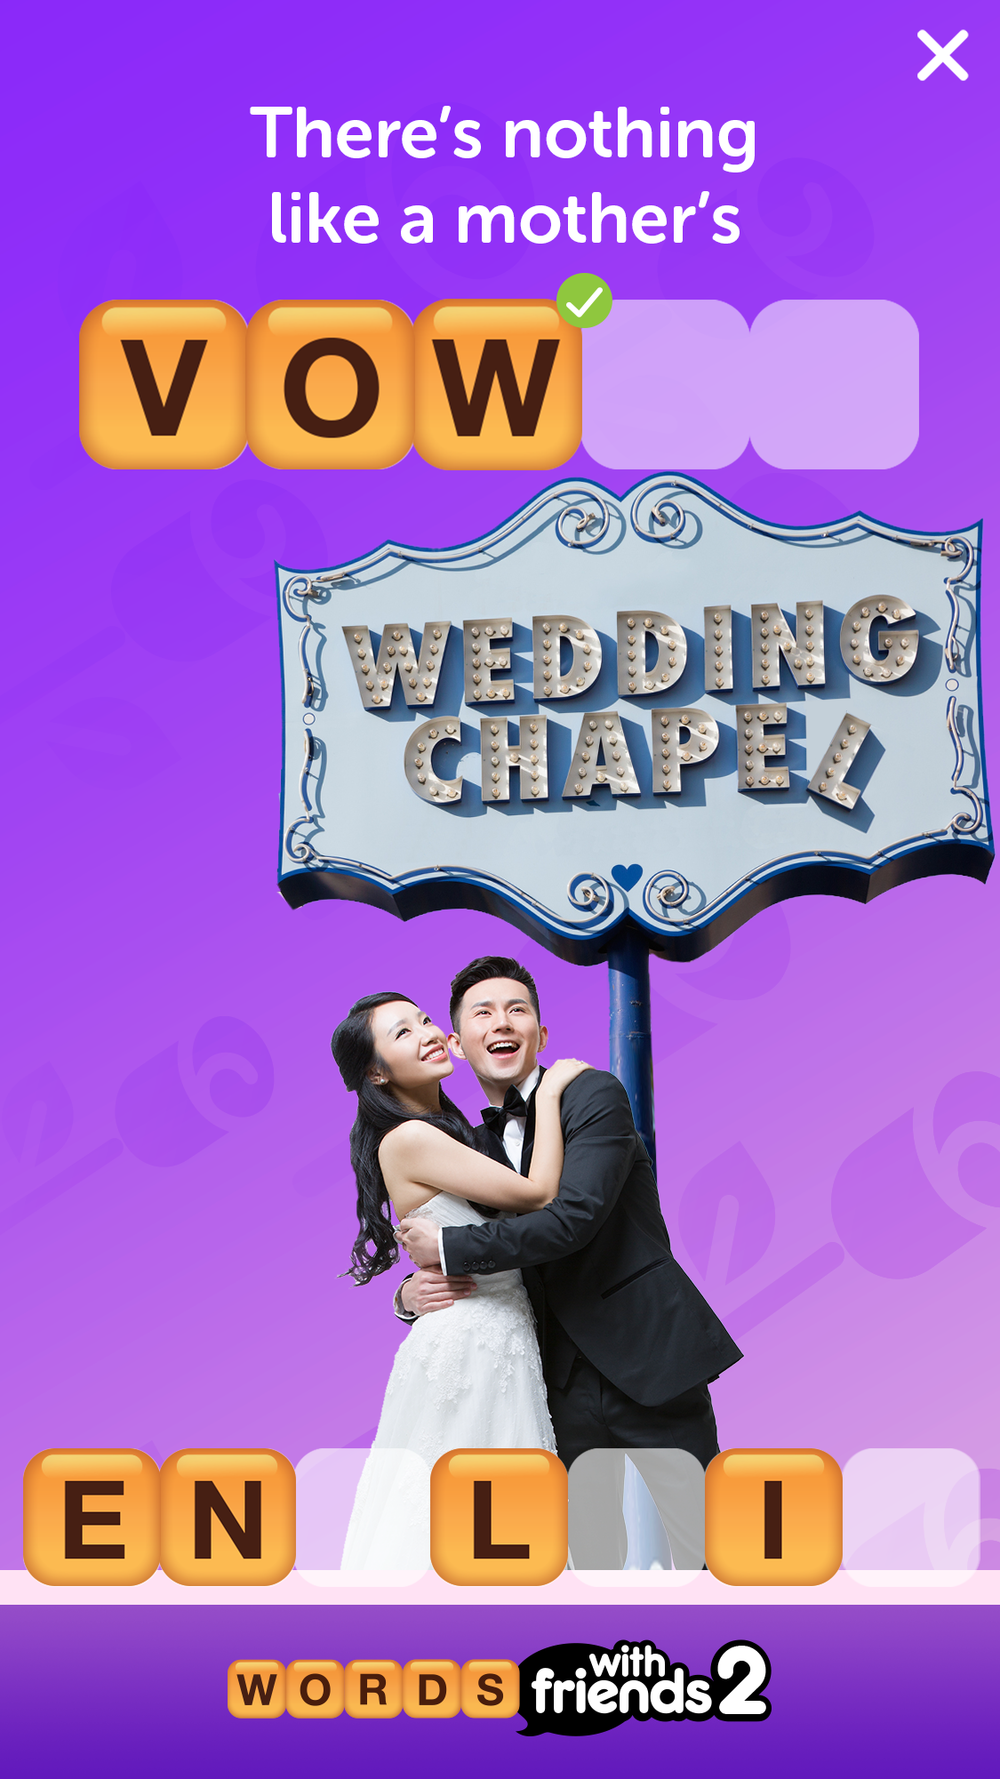 Vow.png